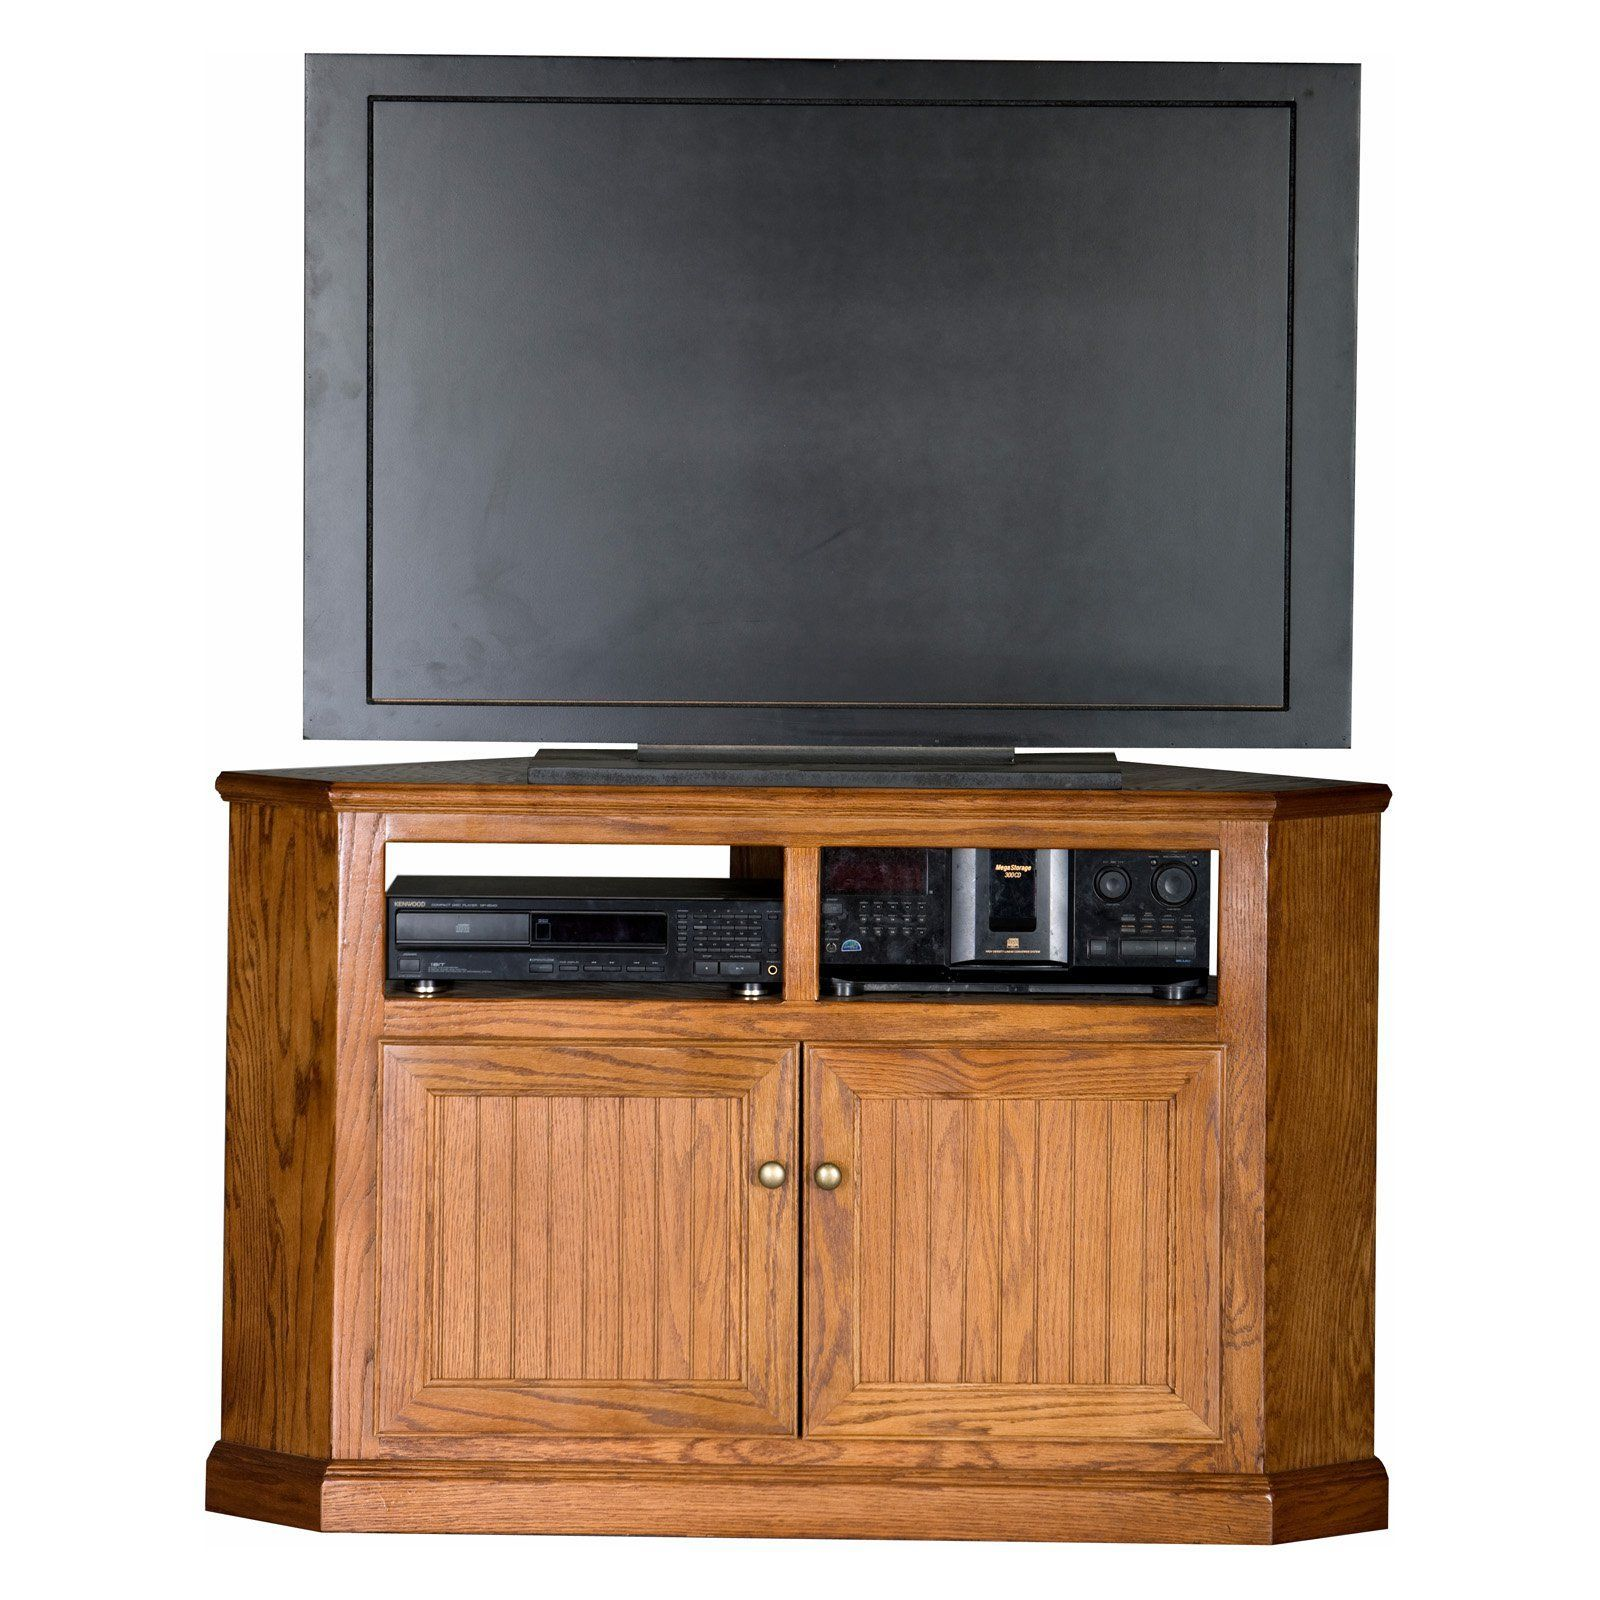 Eagle Furniture Heritage Customizable 50 In. Tall Corner TV Stand   Store  And Organize Your Media Essentials And Accessories With Ease Within The  Eagle ...